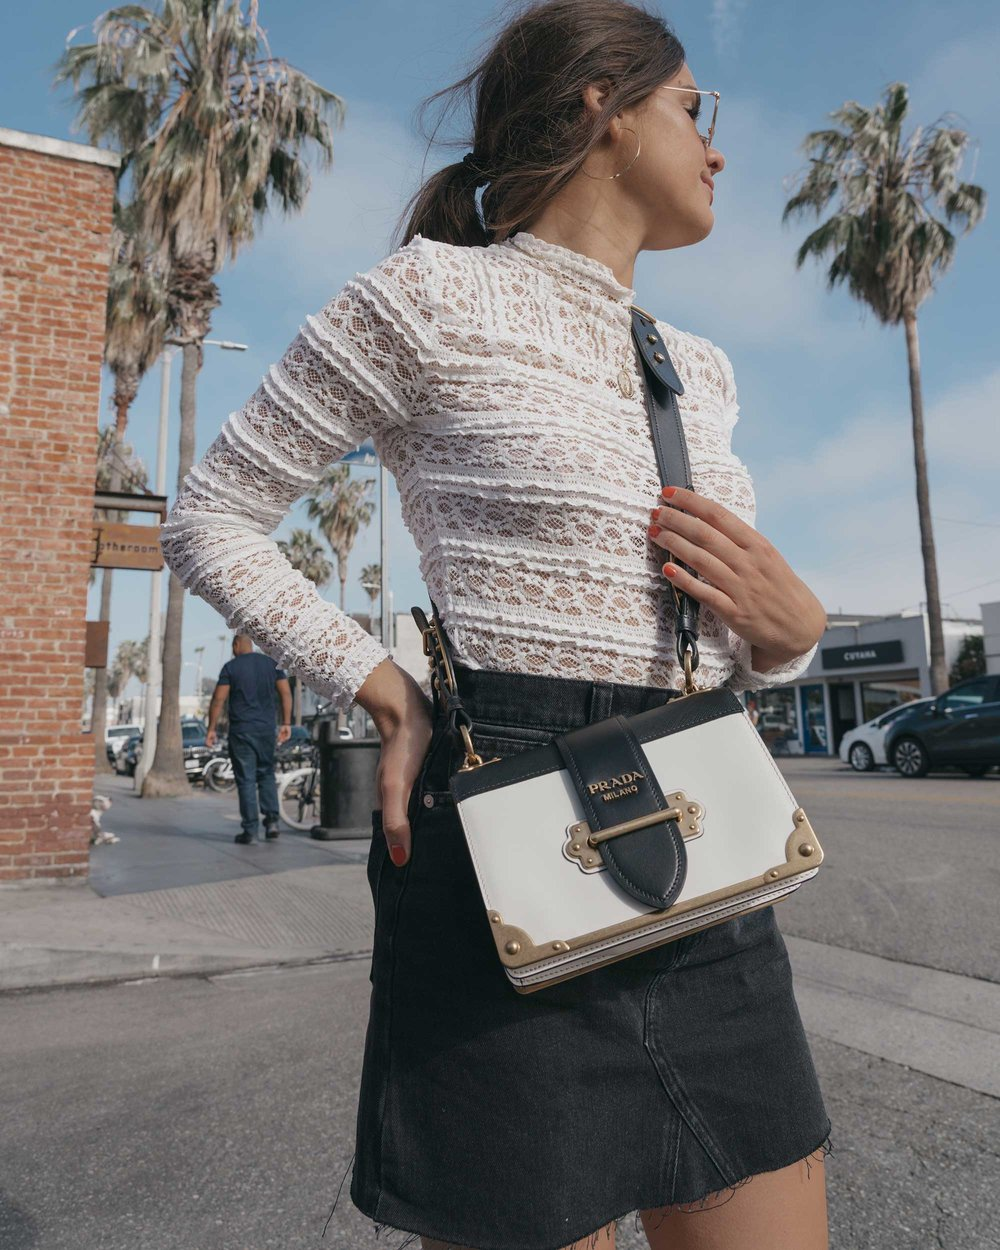 Prada City Saffiano Leather Cahier Bag, Black Denim Skirt, Summer outfit, Abbot Kinney California8.jpg